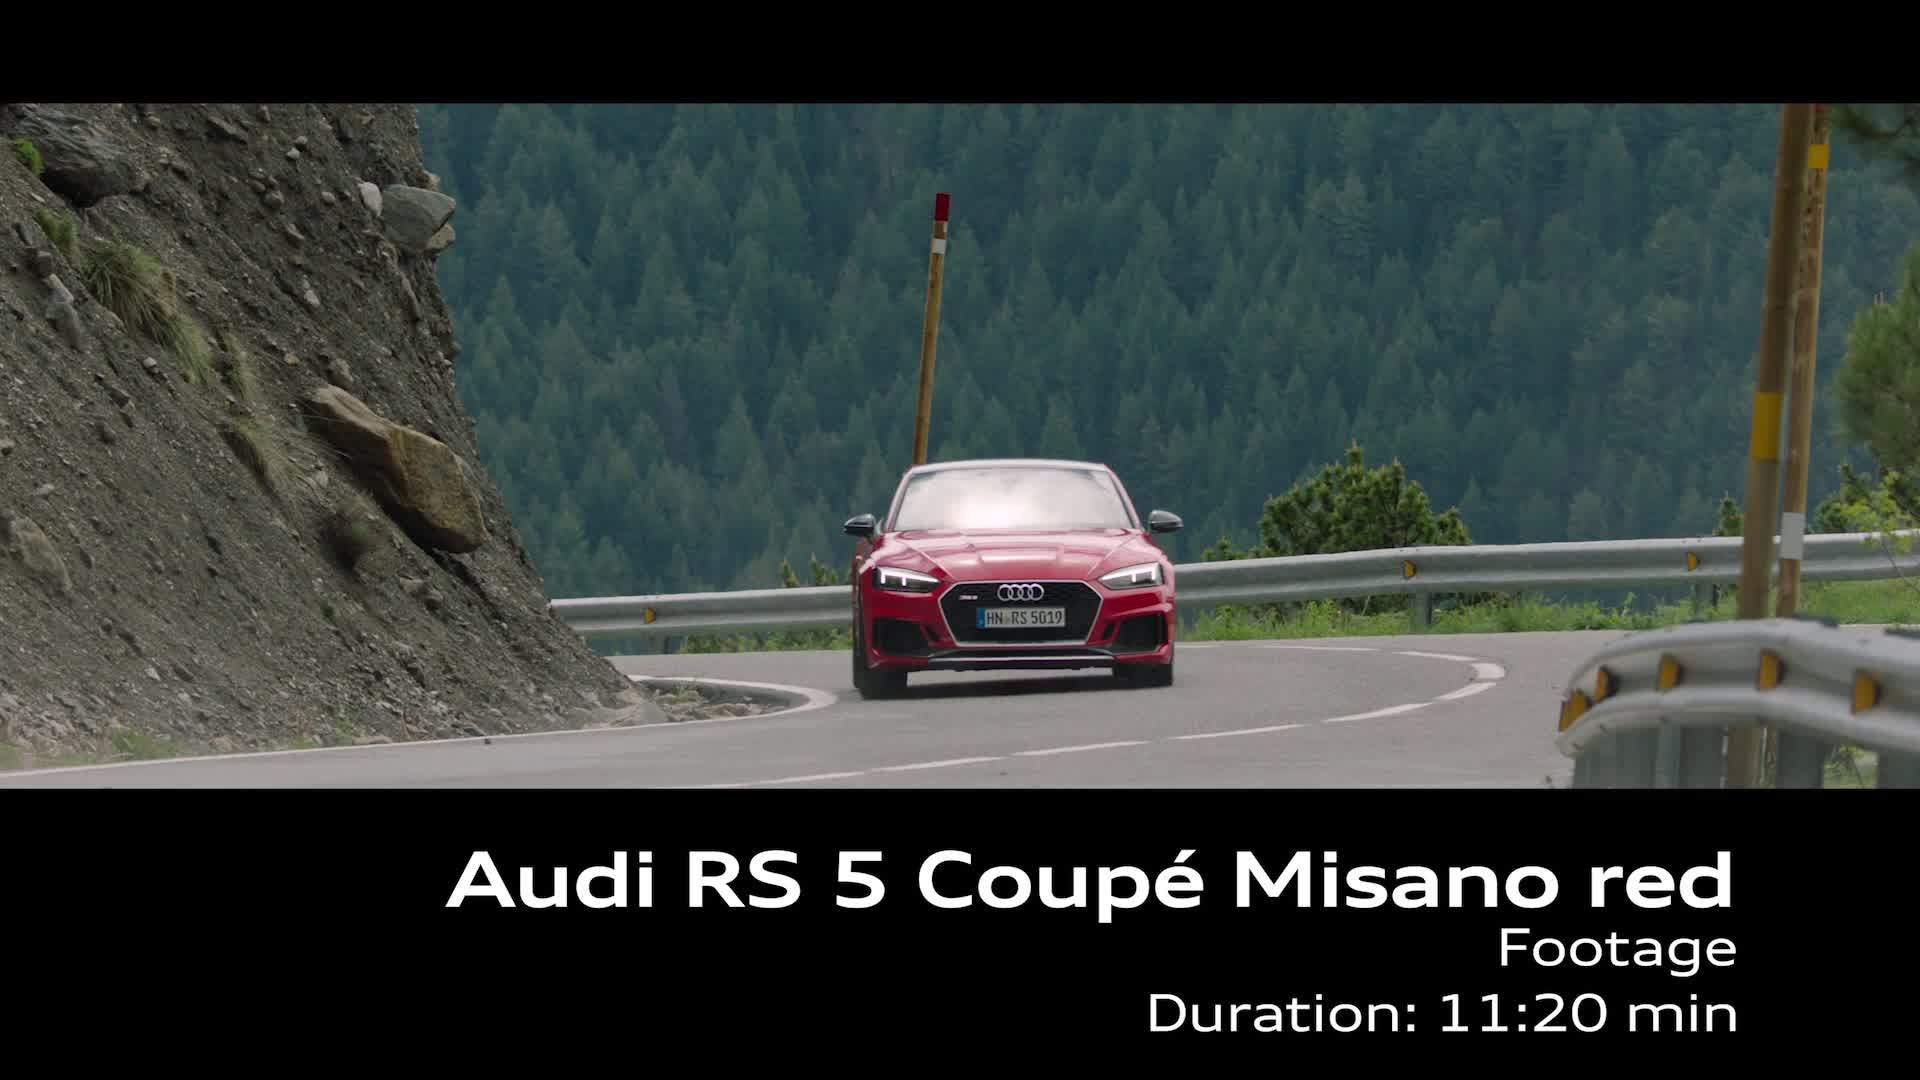 Audi RS 5 Coupé Misano red - Footage on Location Andorra